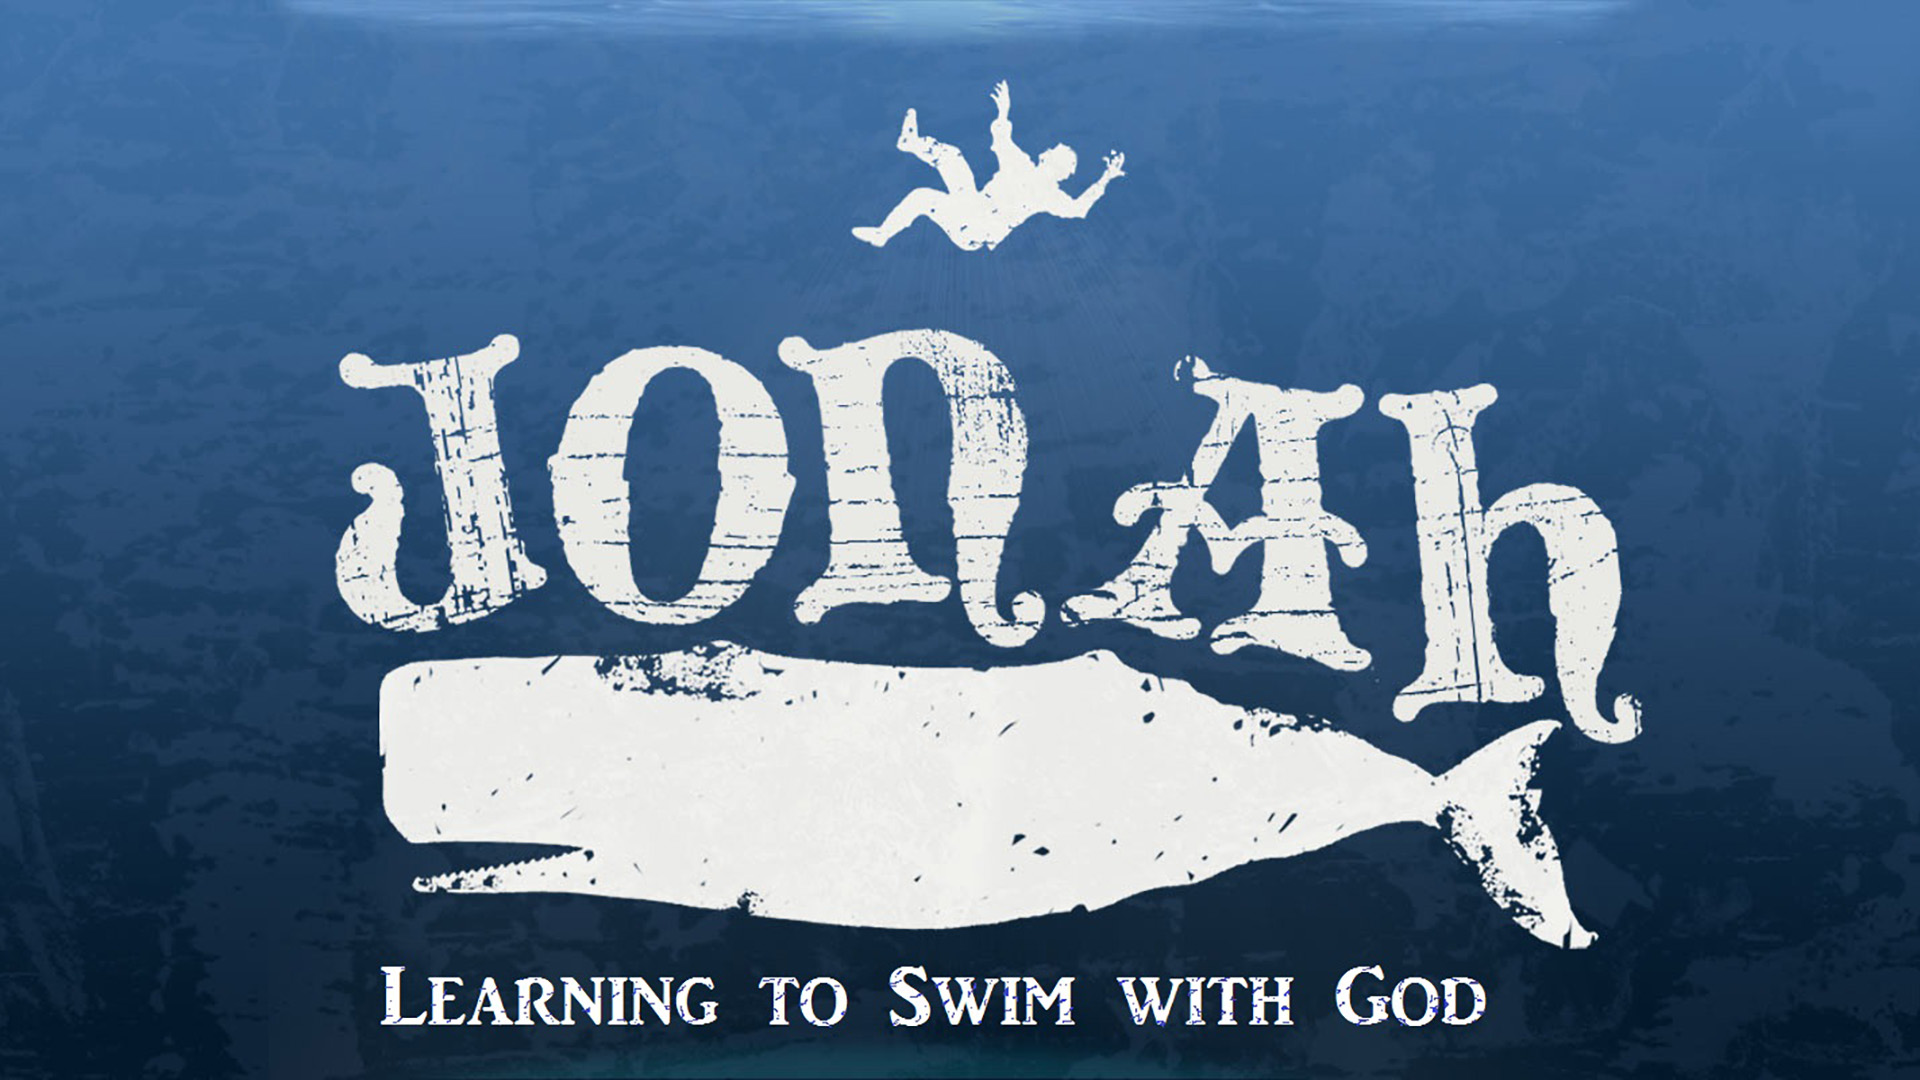 Learning to Swim with God